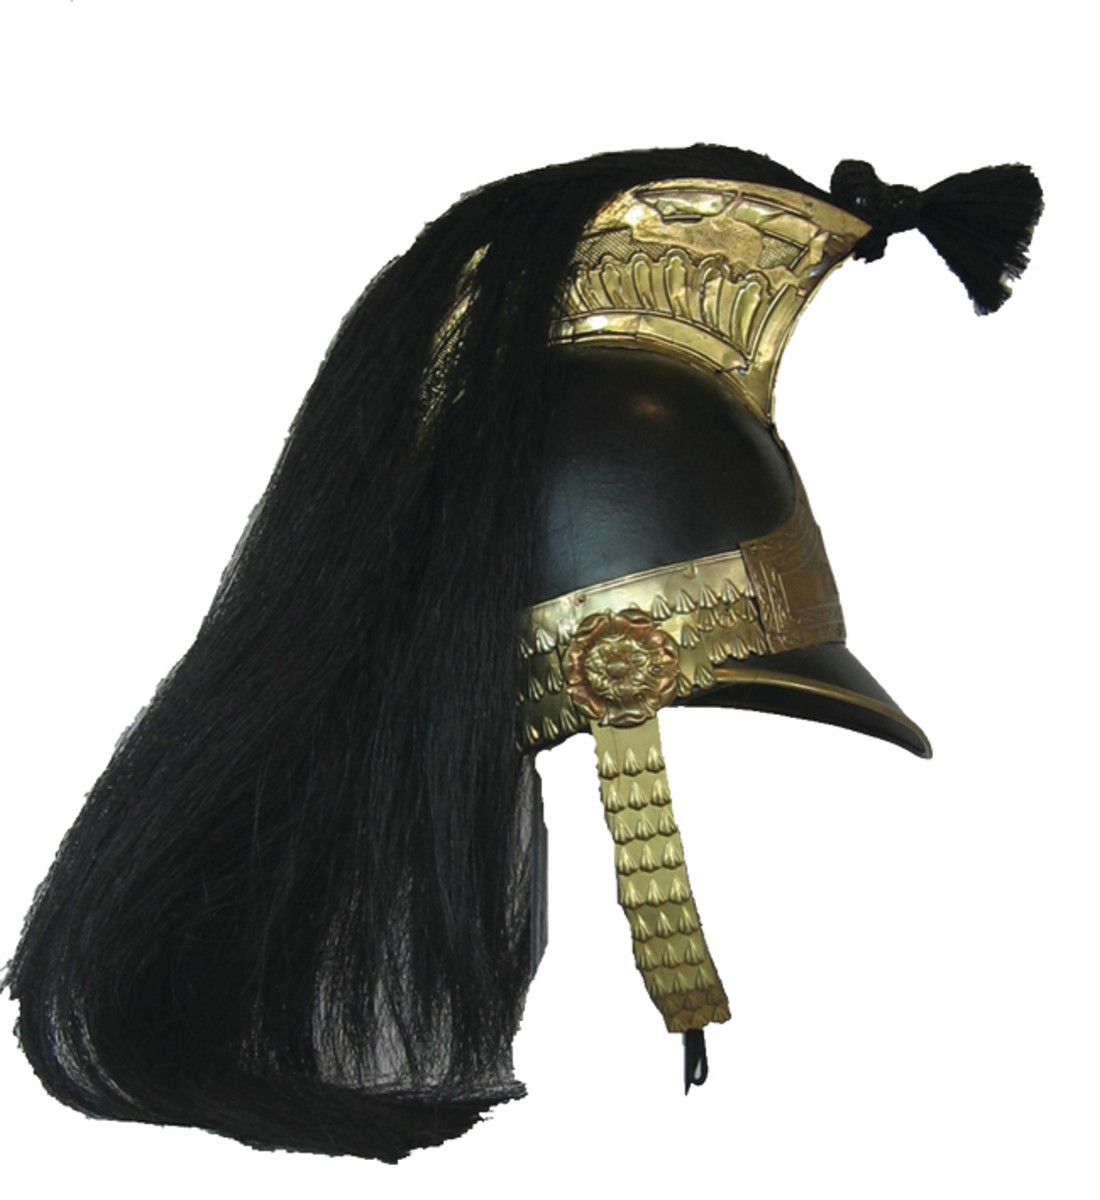 The Ellwood Roman Air Tube helmet has a shape that is similar in design to the metal and leather helmets that were adopted by the Household Cavalry units following the Napoleonic Wars. This style of helmet featured a Romanesque comb and remained in use until it replaced by the Albert-pattern introduced in the 1840s.